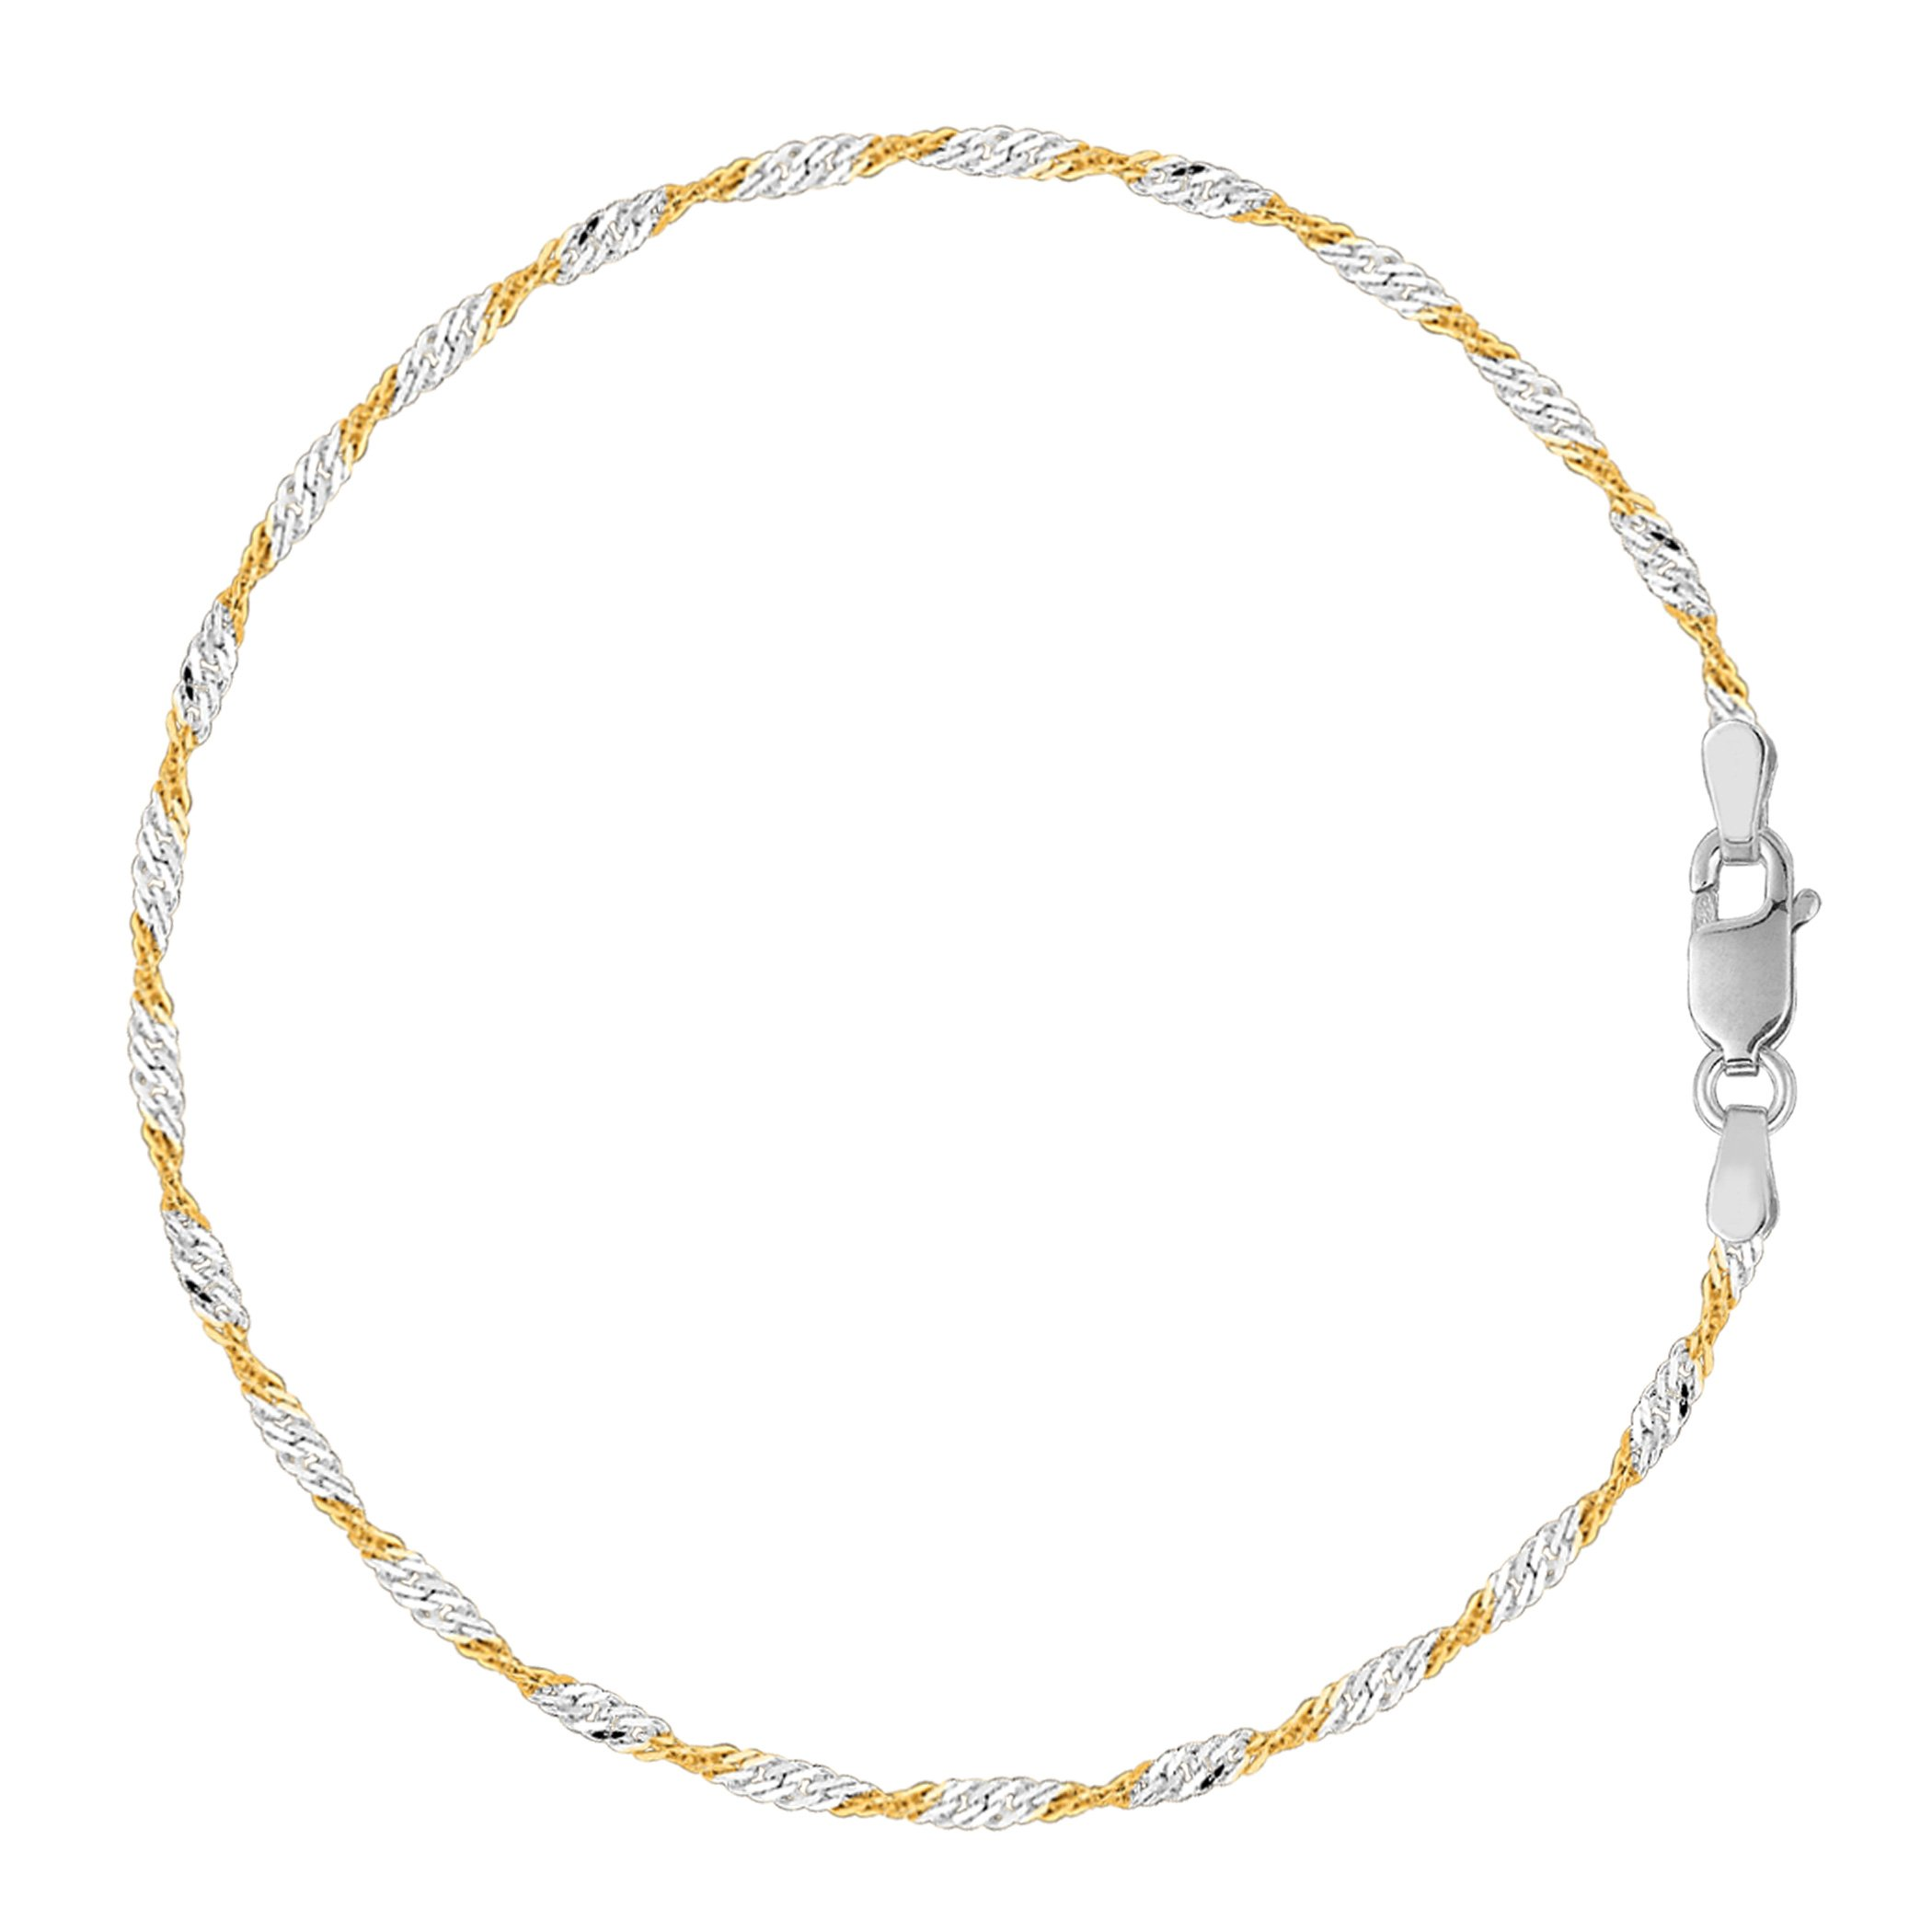 White And Yellow Singapore Style Chain Anklet In Sterling Silver, 9''